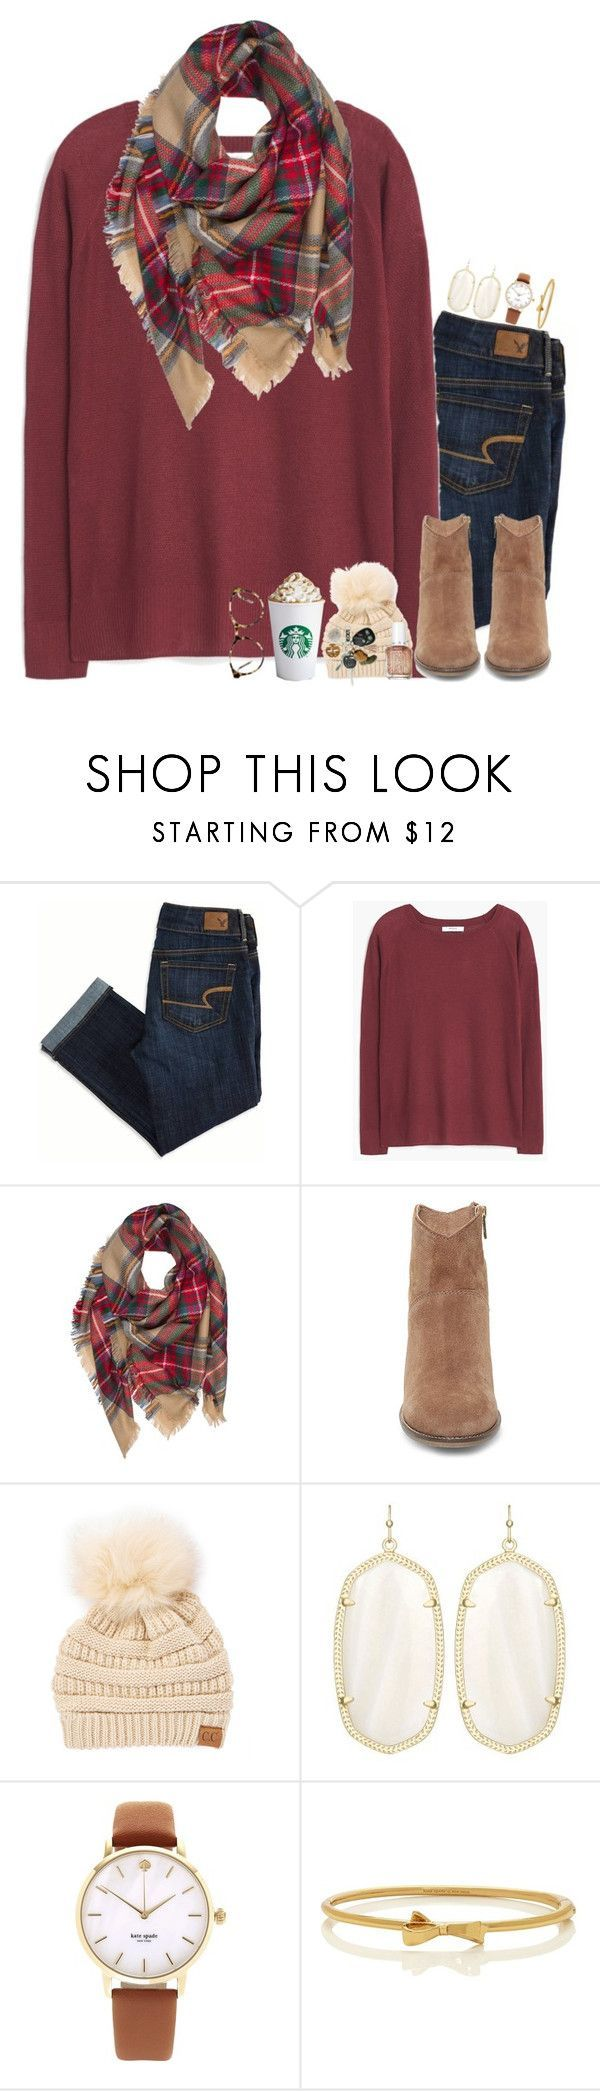 """Because a pumpkin spice latte is a sure sign that fall is coming"" by thedancersophie ❤️ liked on Polyvore featuring American Eagle Outfitters, MANGO, Steve Madden, C.C Cheveux, Essie, Kendra Scott, Kate Spade, Love and livslovelyfallchallenge"